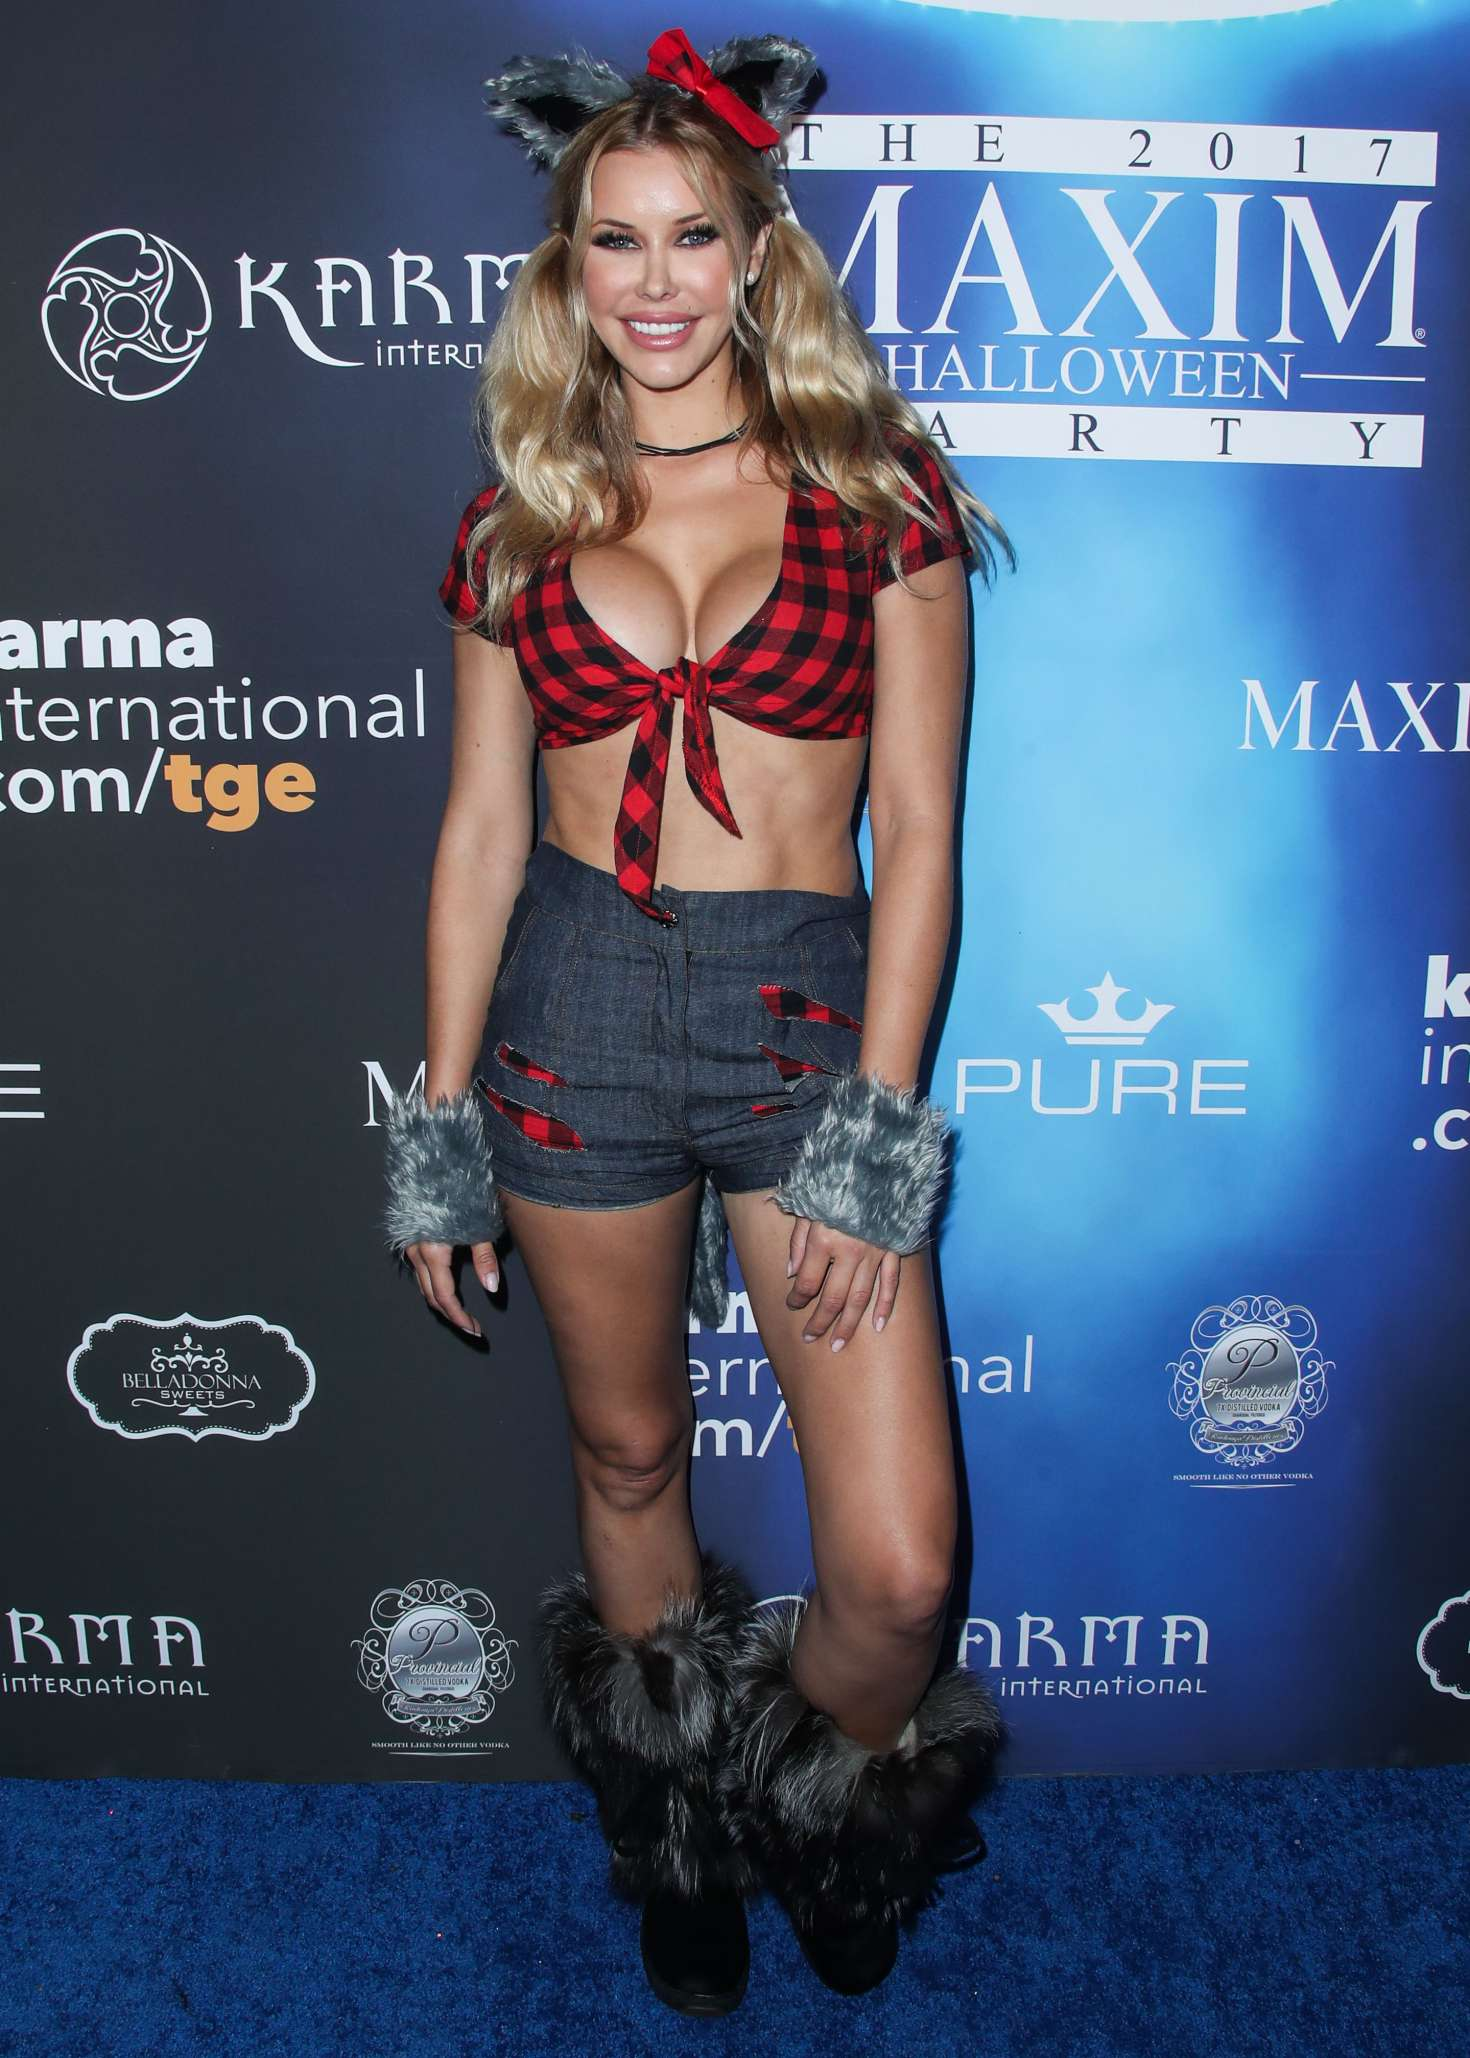 Kennedy Summers 2017 : Kennedy Summers: 2017 Maxim Halloween Party -08